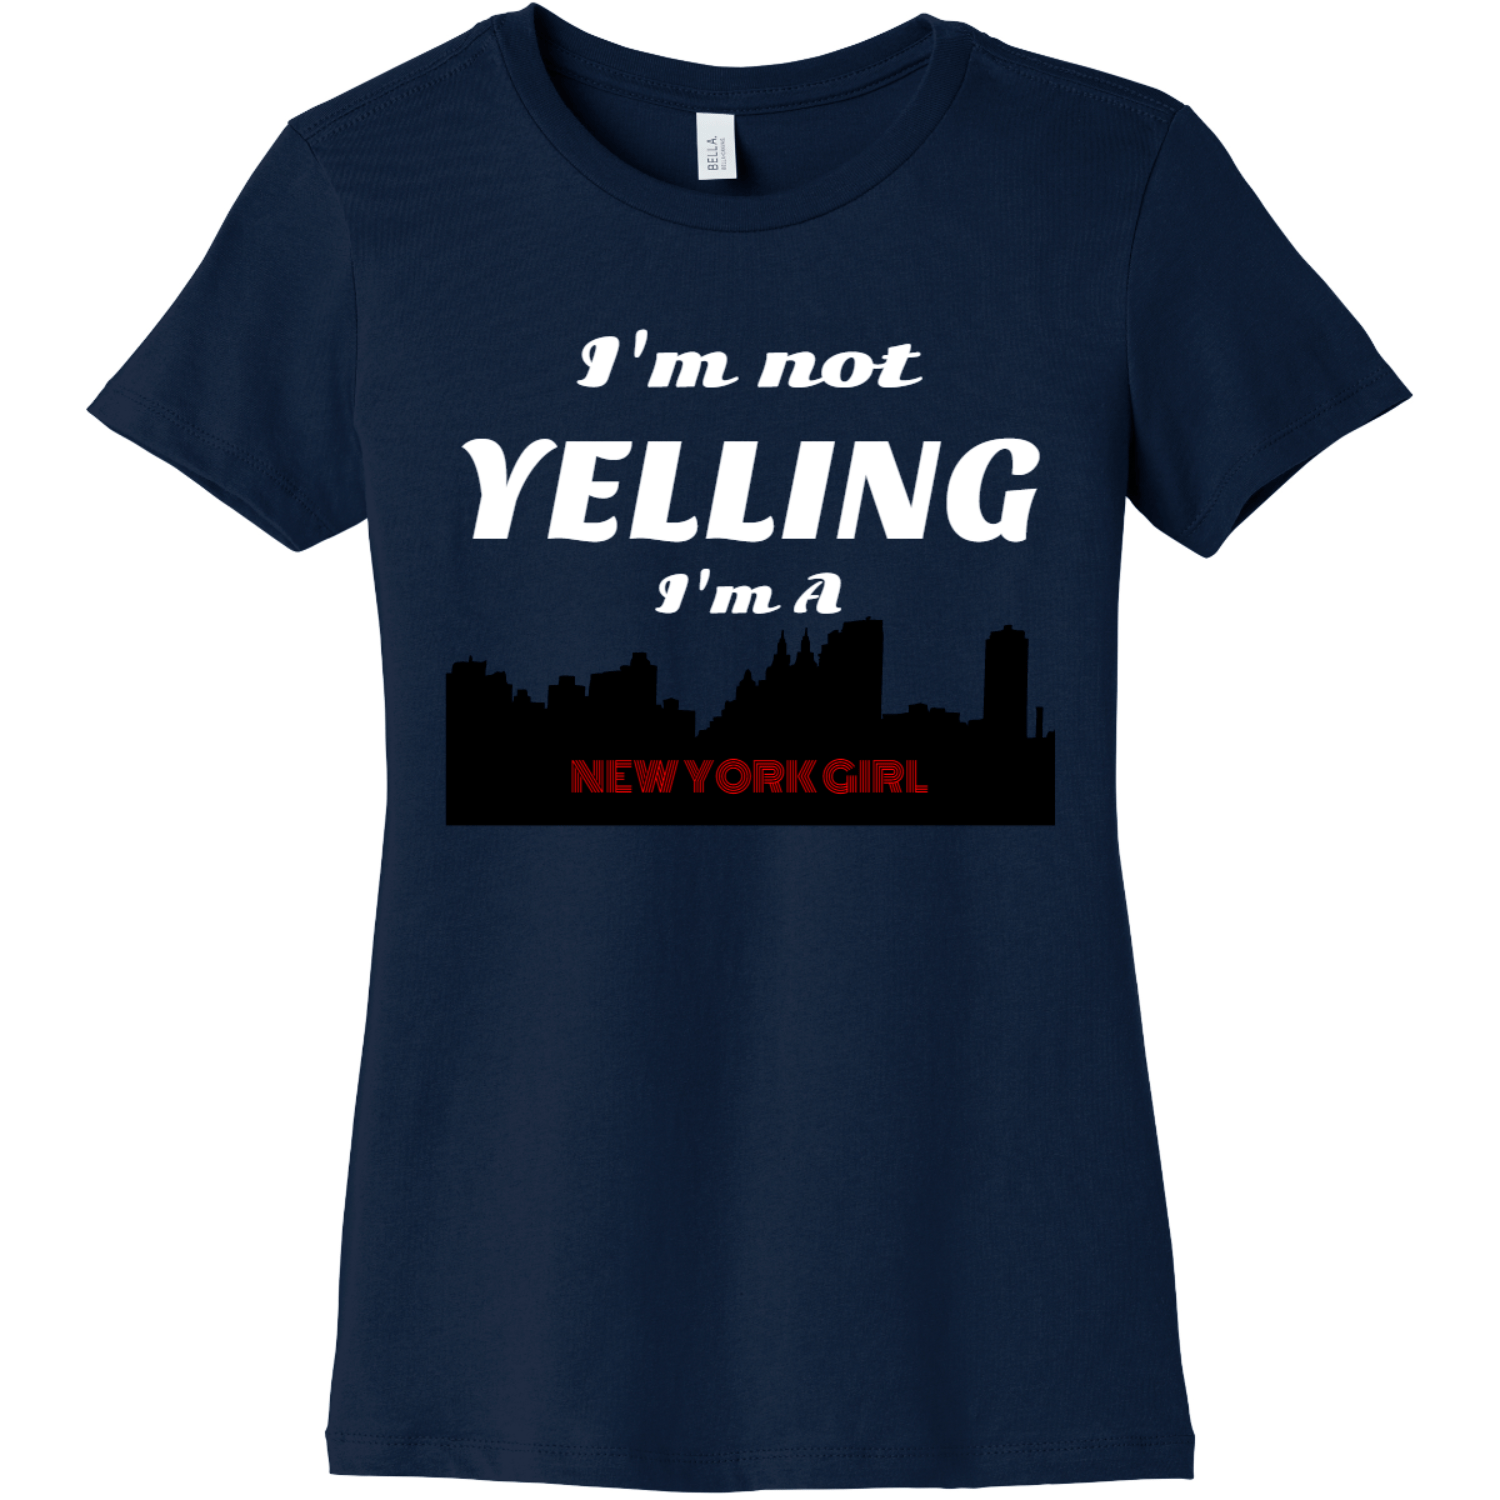 New York Girl I'm not yelling Navy Bella Canvas 6004 Ladies The Favorite Tee